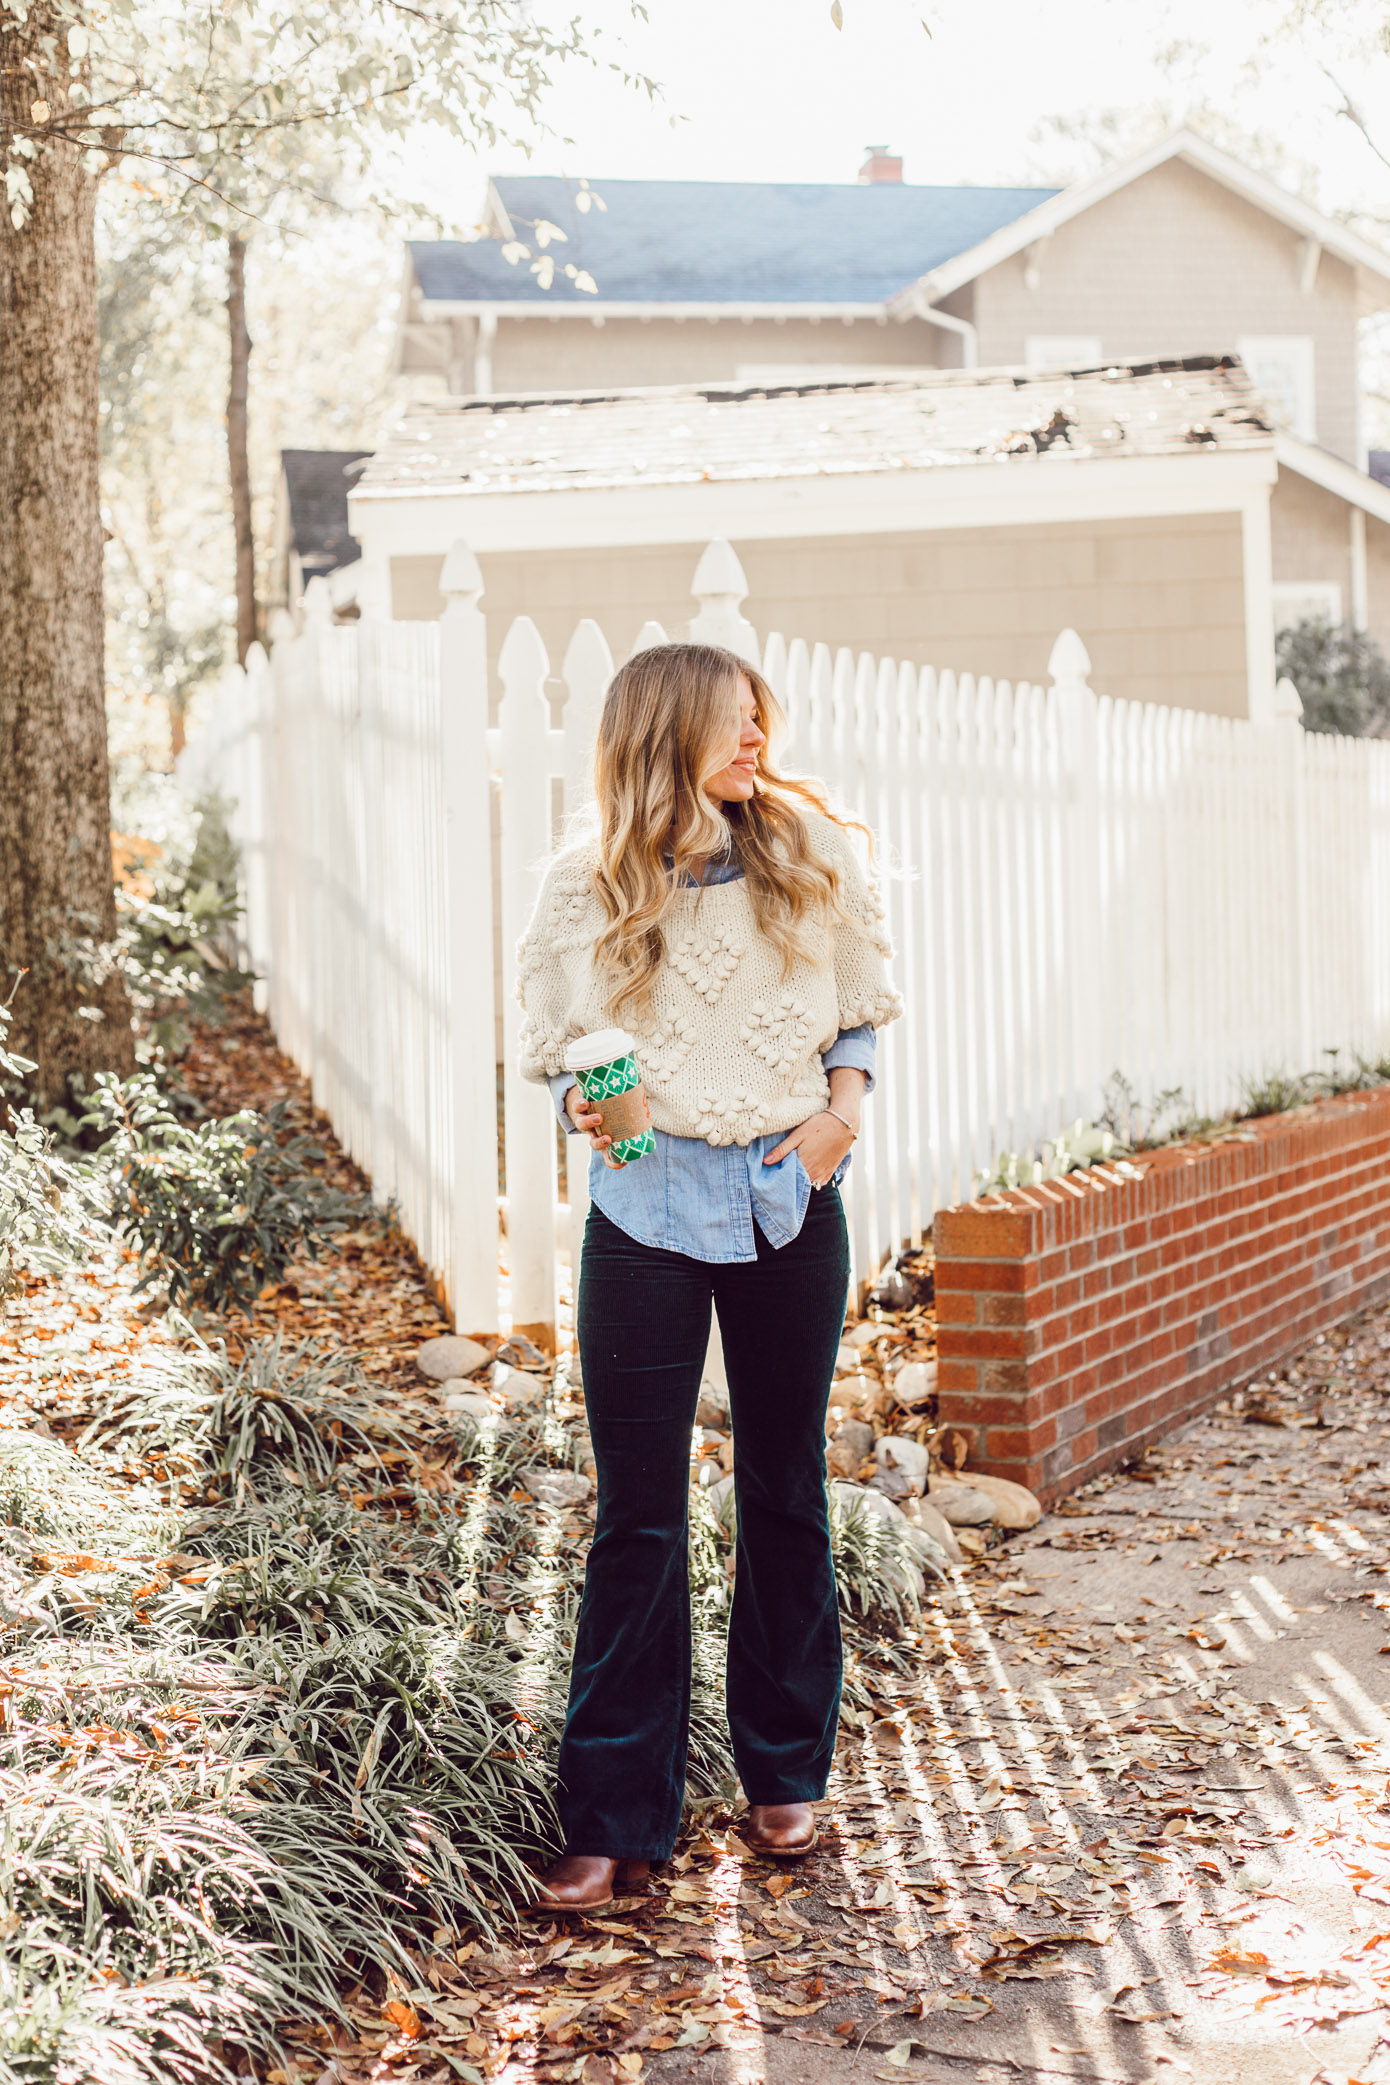 How to Style a Pommed Heart Sweater, Styling Corduroys for Winter | Must Try Winter Trend featured on Louella Reese